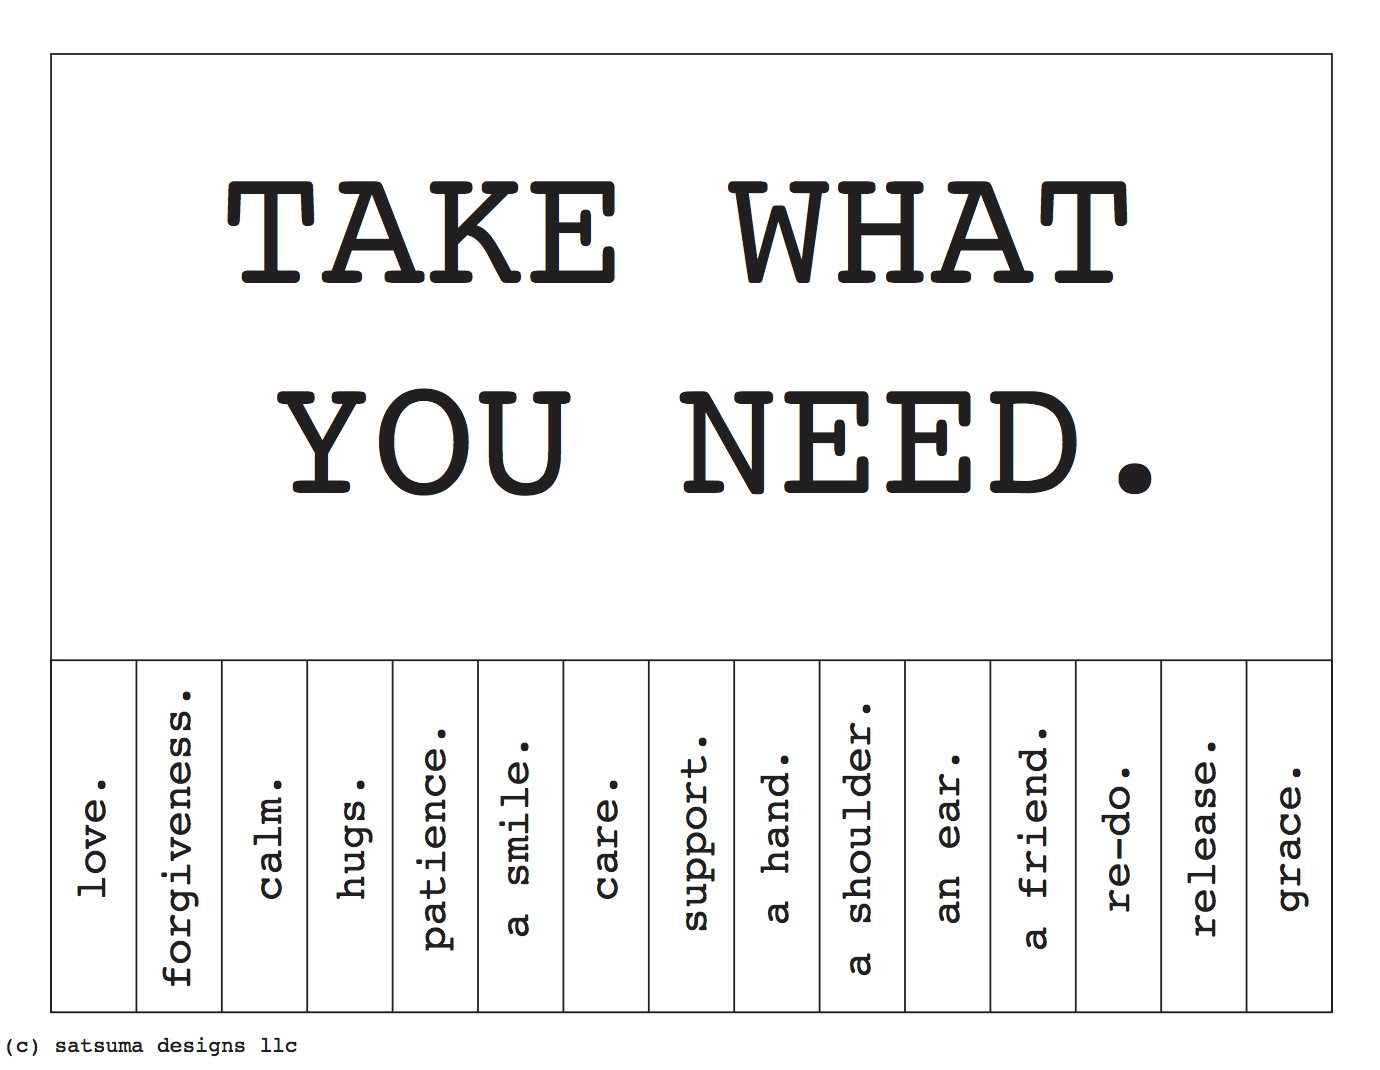 photo regarding Take What You Need Printable called Consider What Oneself Have to have Tags Satsuma Ideas